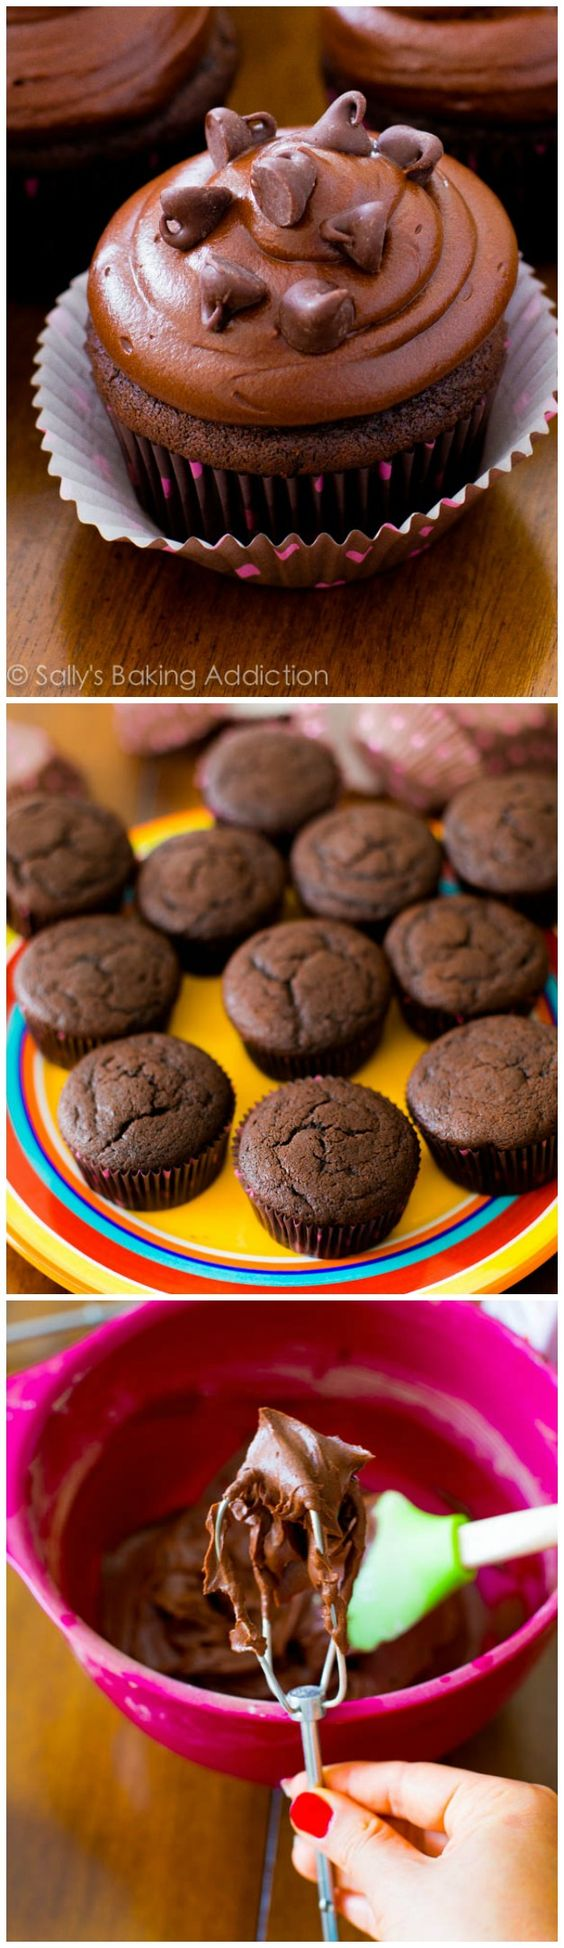 "My favorite Homemade Chocolate Cupcakes. I call them ""death by chocolate"" - for chocolate lovers only!"